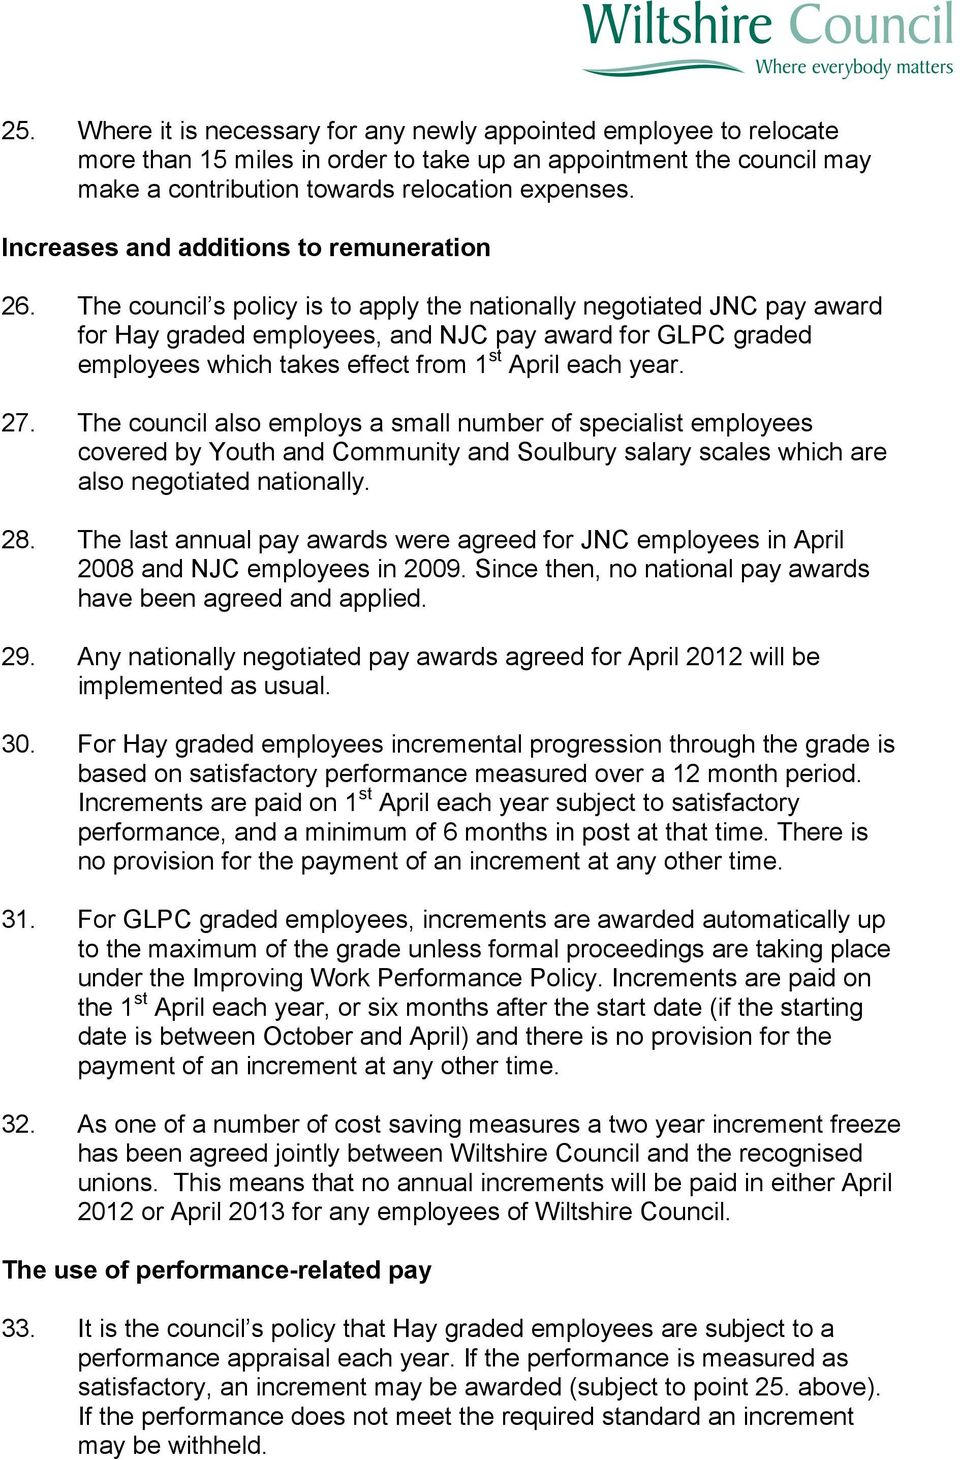 The council s policy is to apply the nationally negotiated JNC pay award for Hay graded employees, and NJC pay award for GLPC graded employees which takes effect from 1 st April each year. 27.